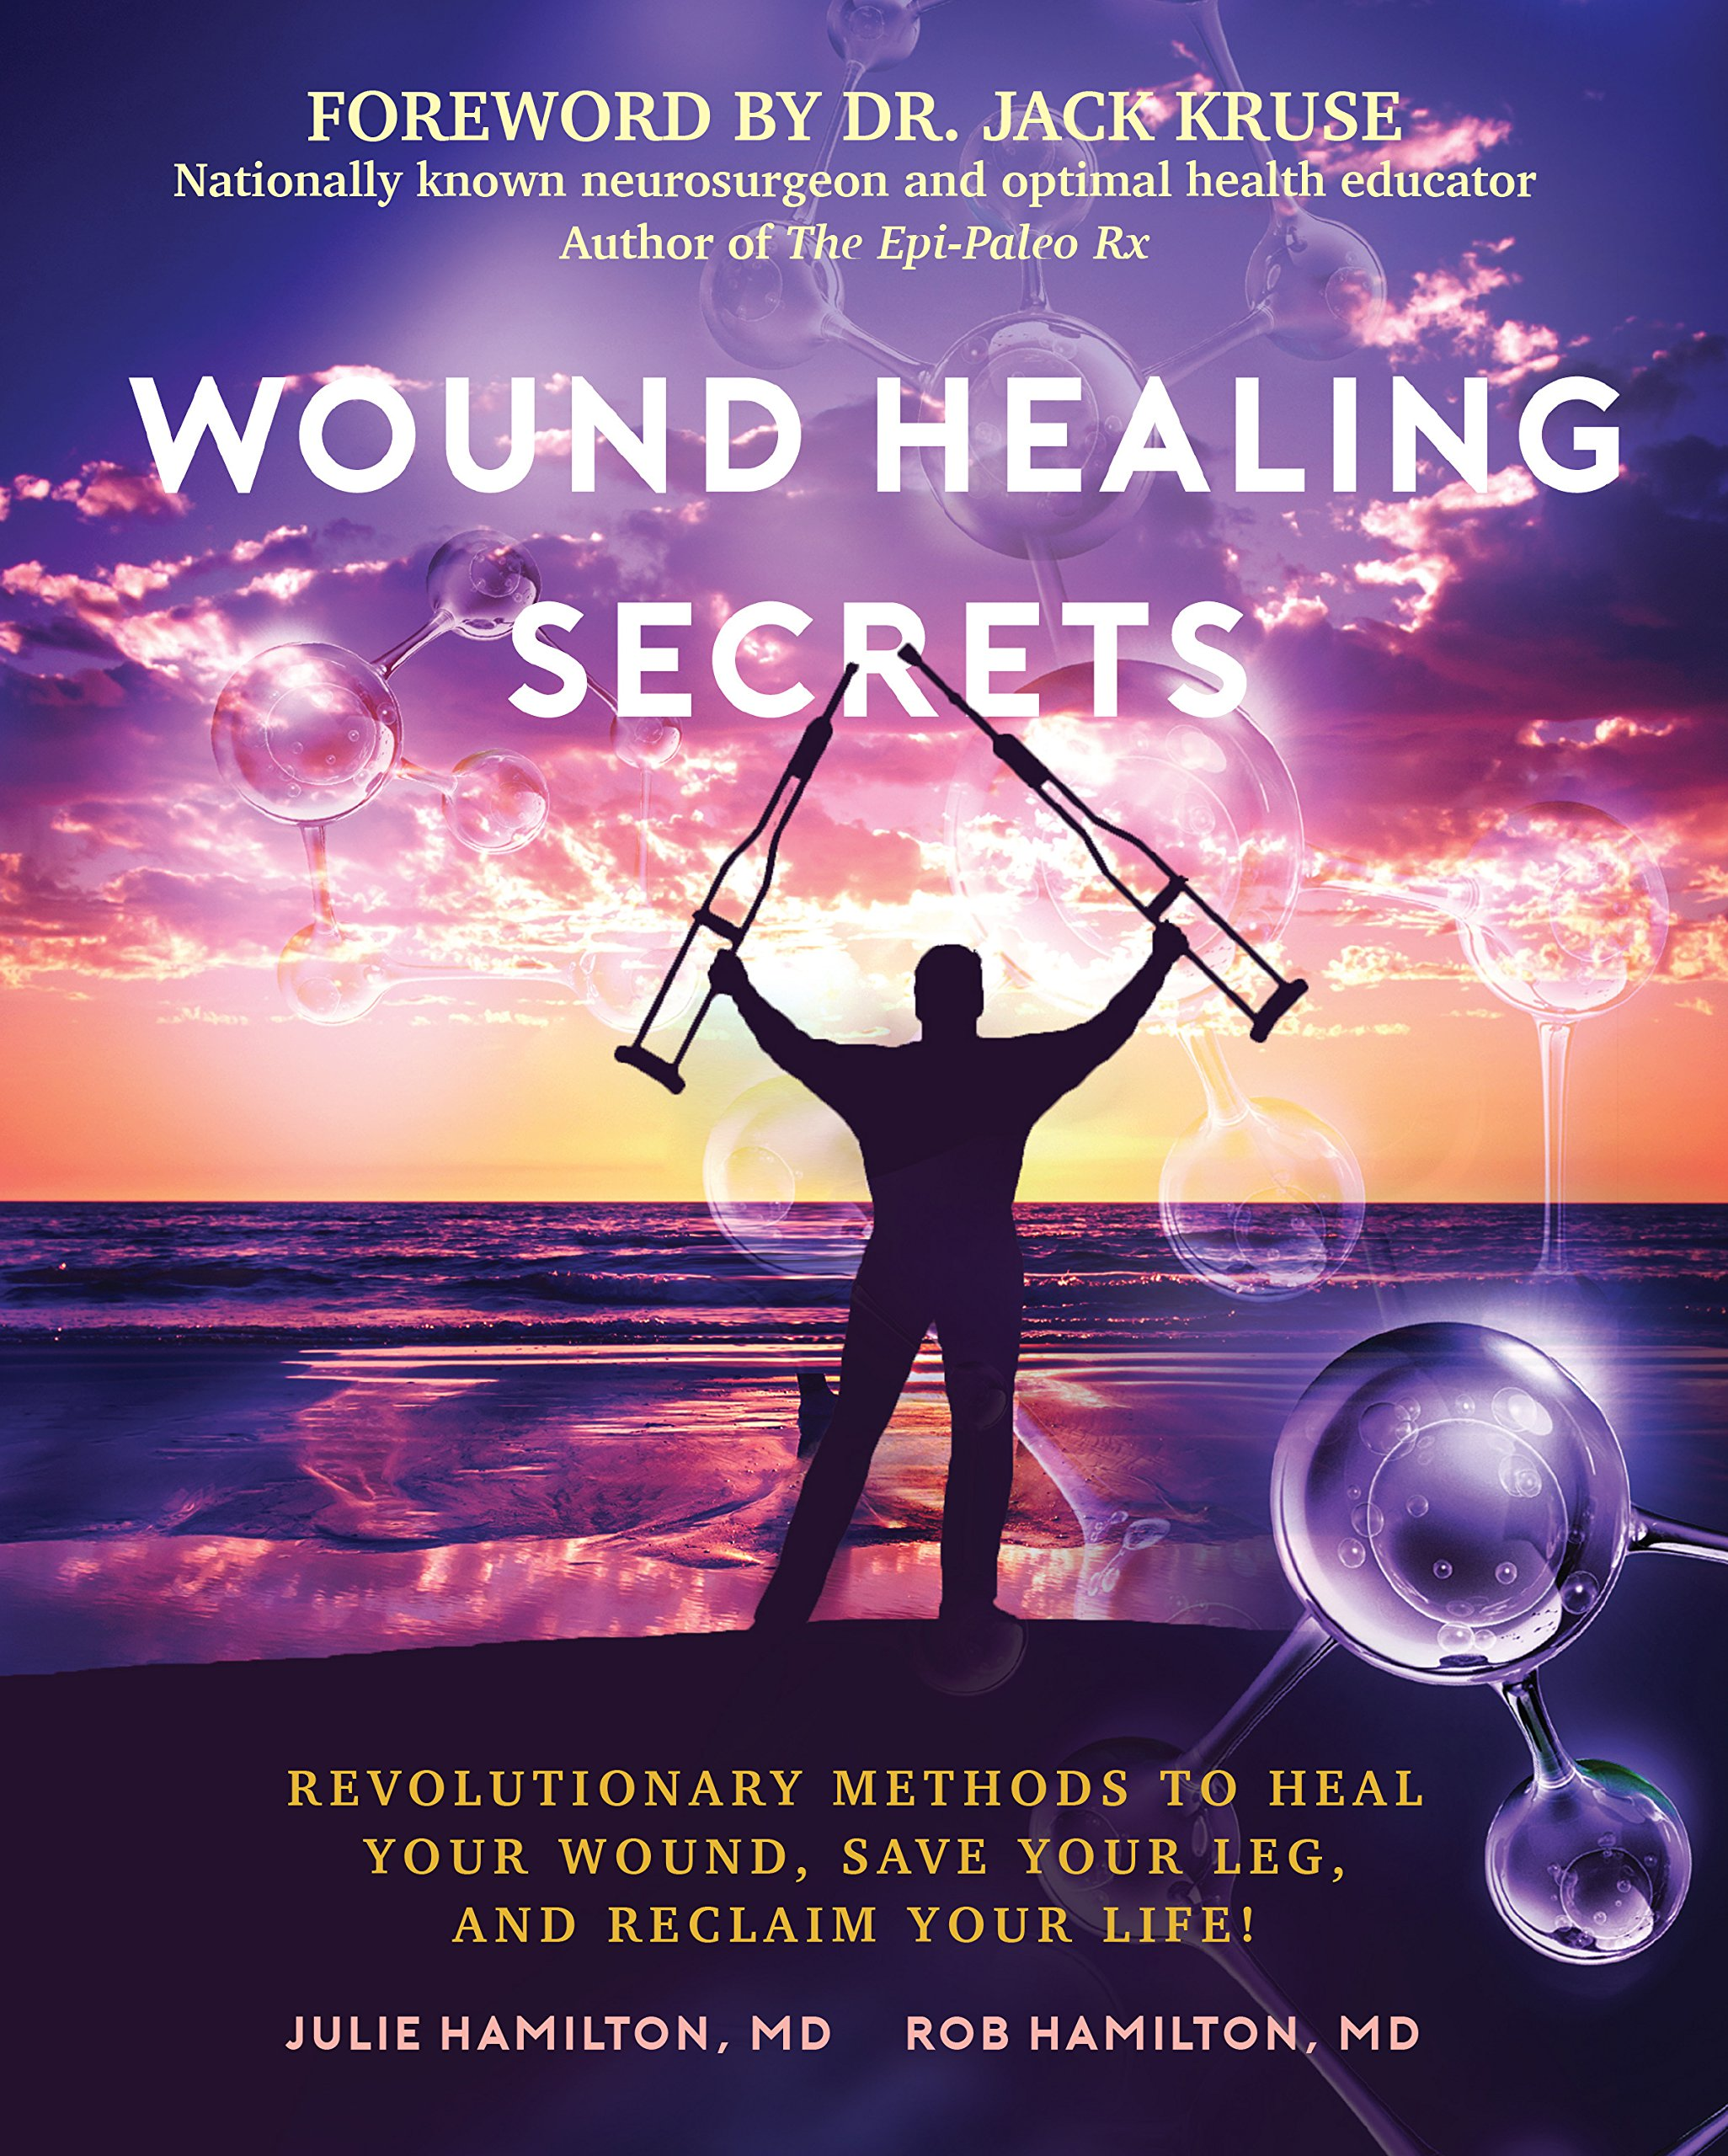 Wound Healing Secrets: Revolutionary Methods To Heal Your Wound, Save Your Leg, And Reclaim Your Life! pdf